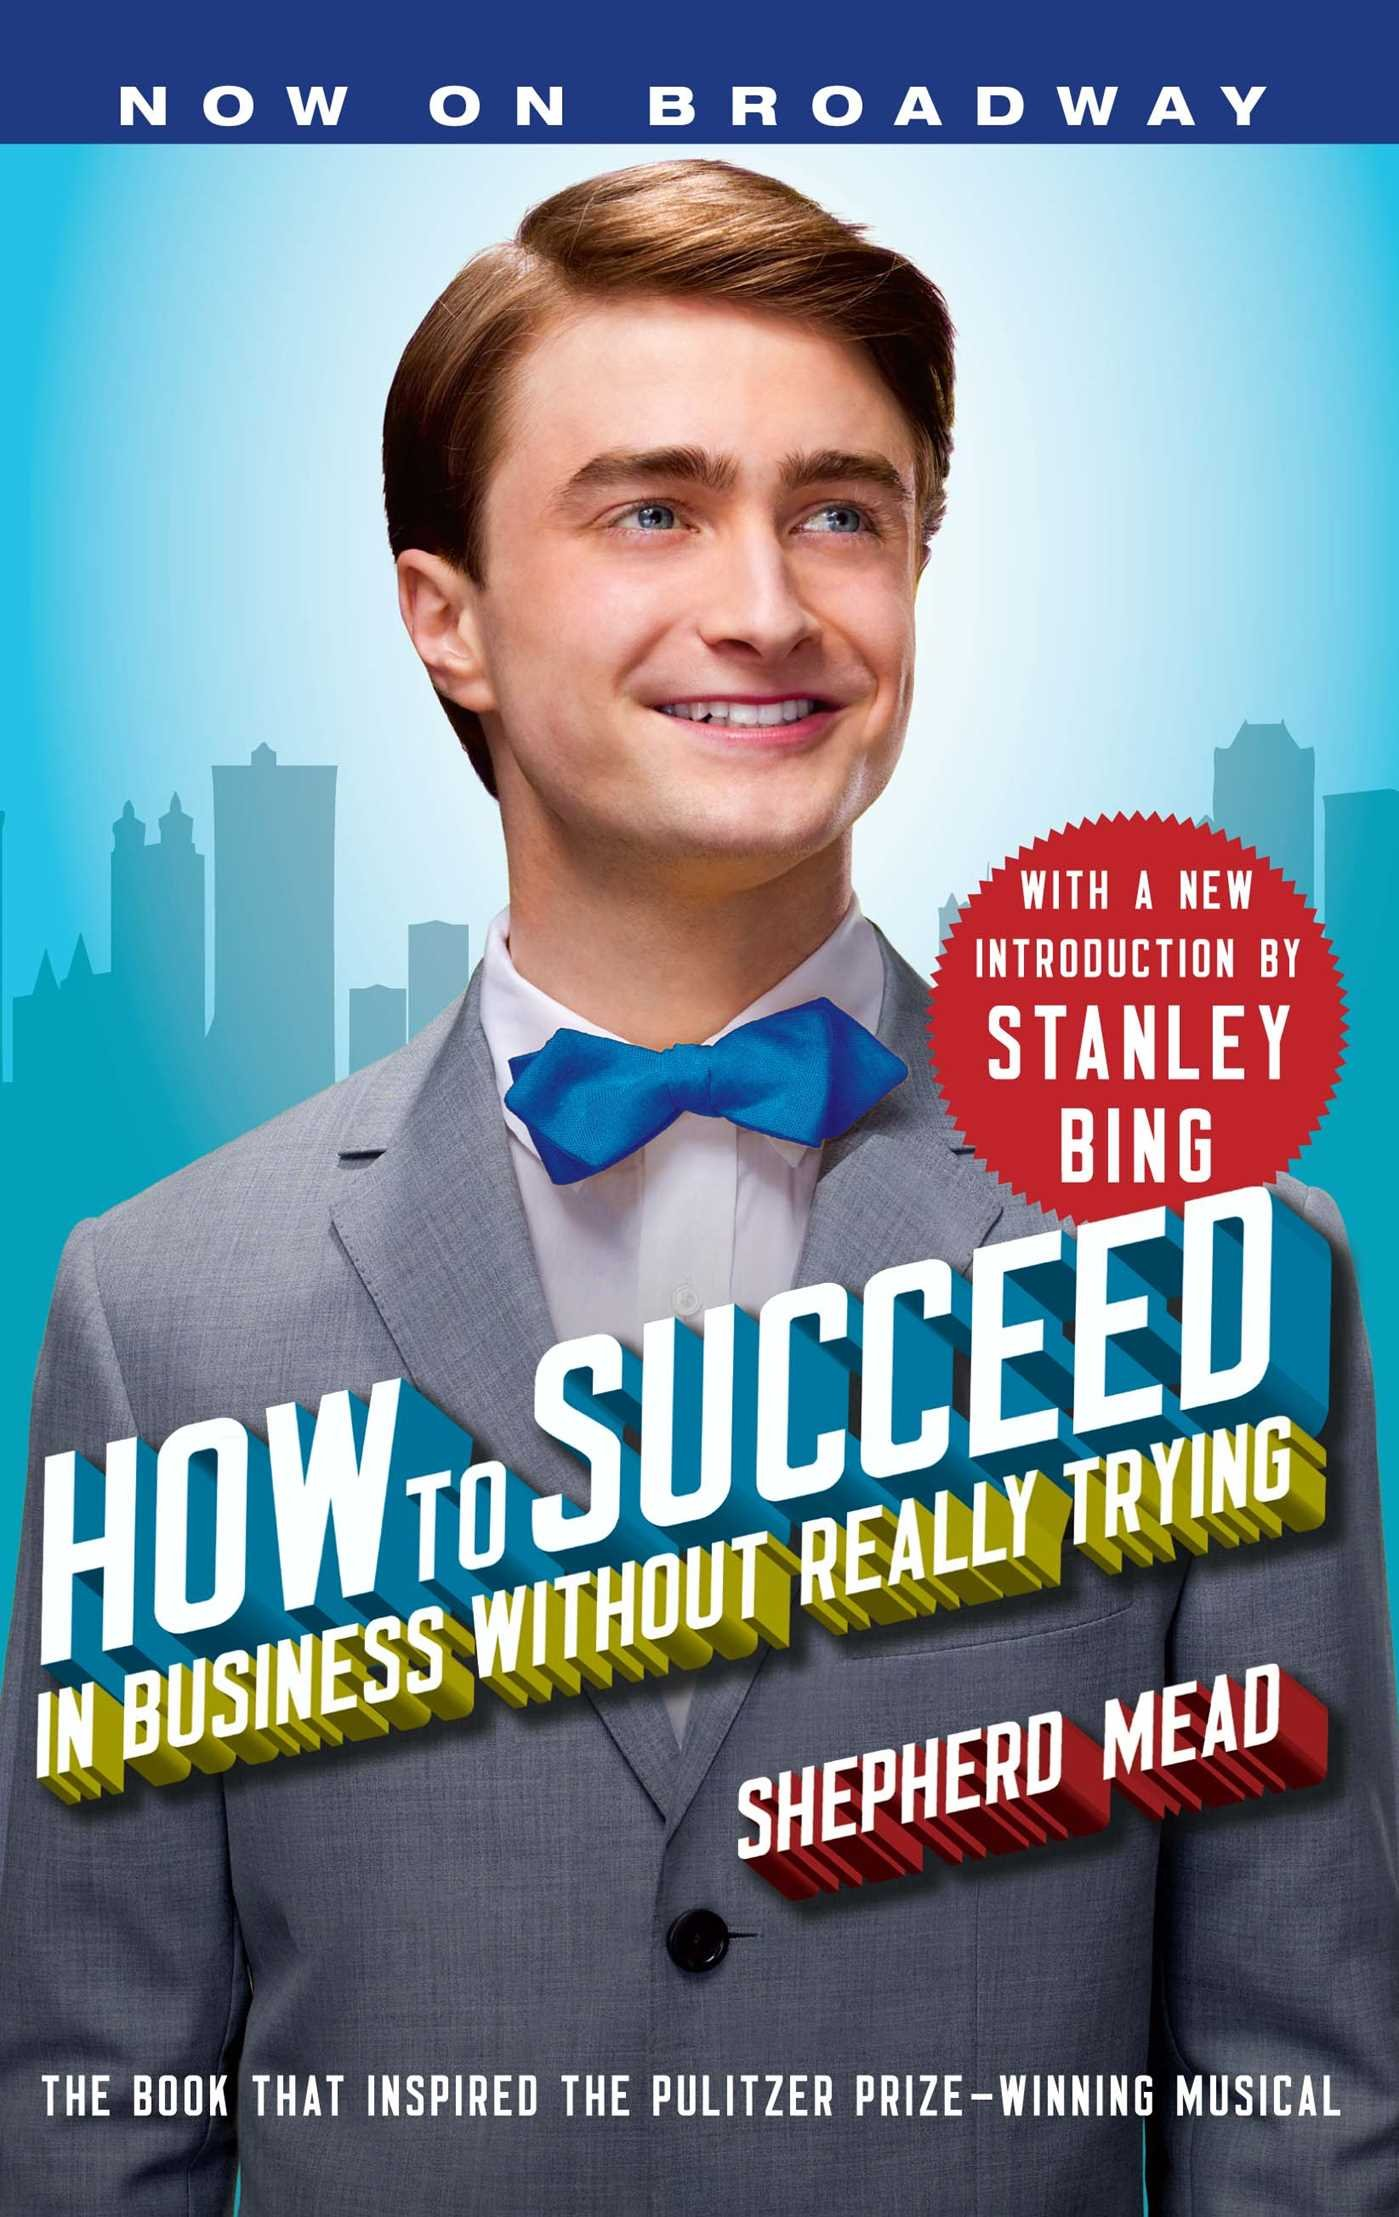 How to succeed in business 11